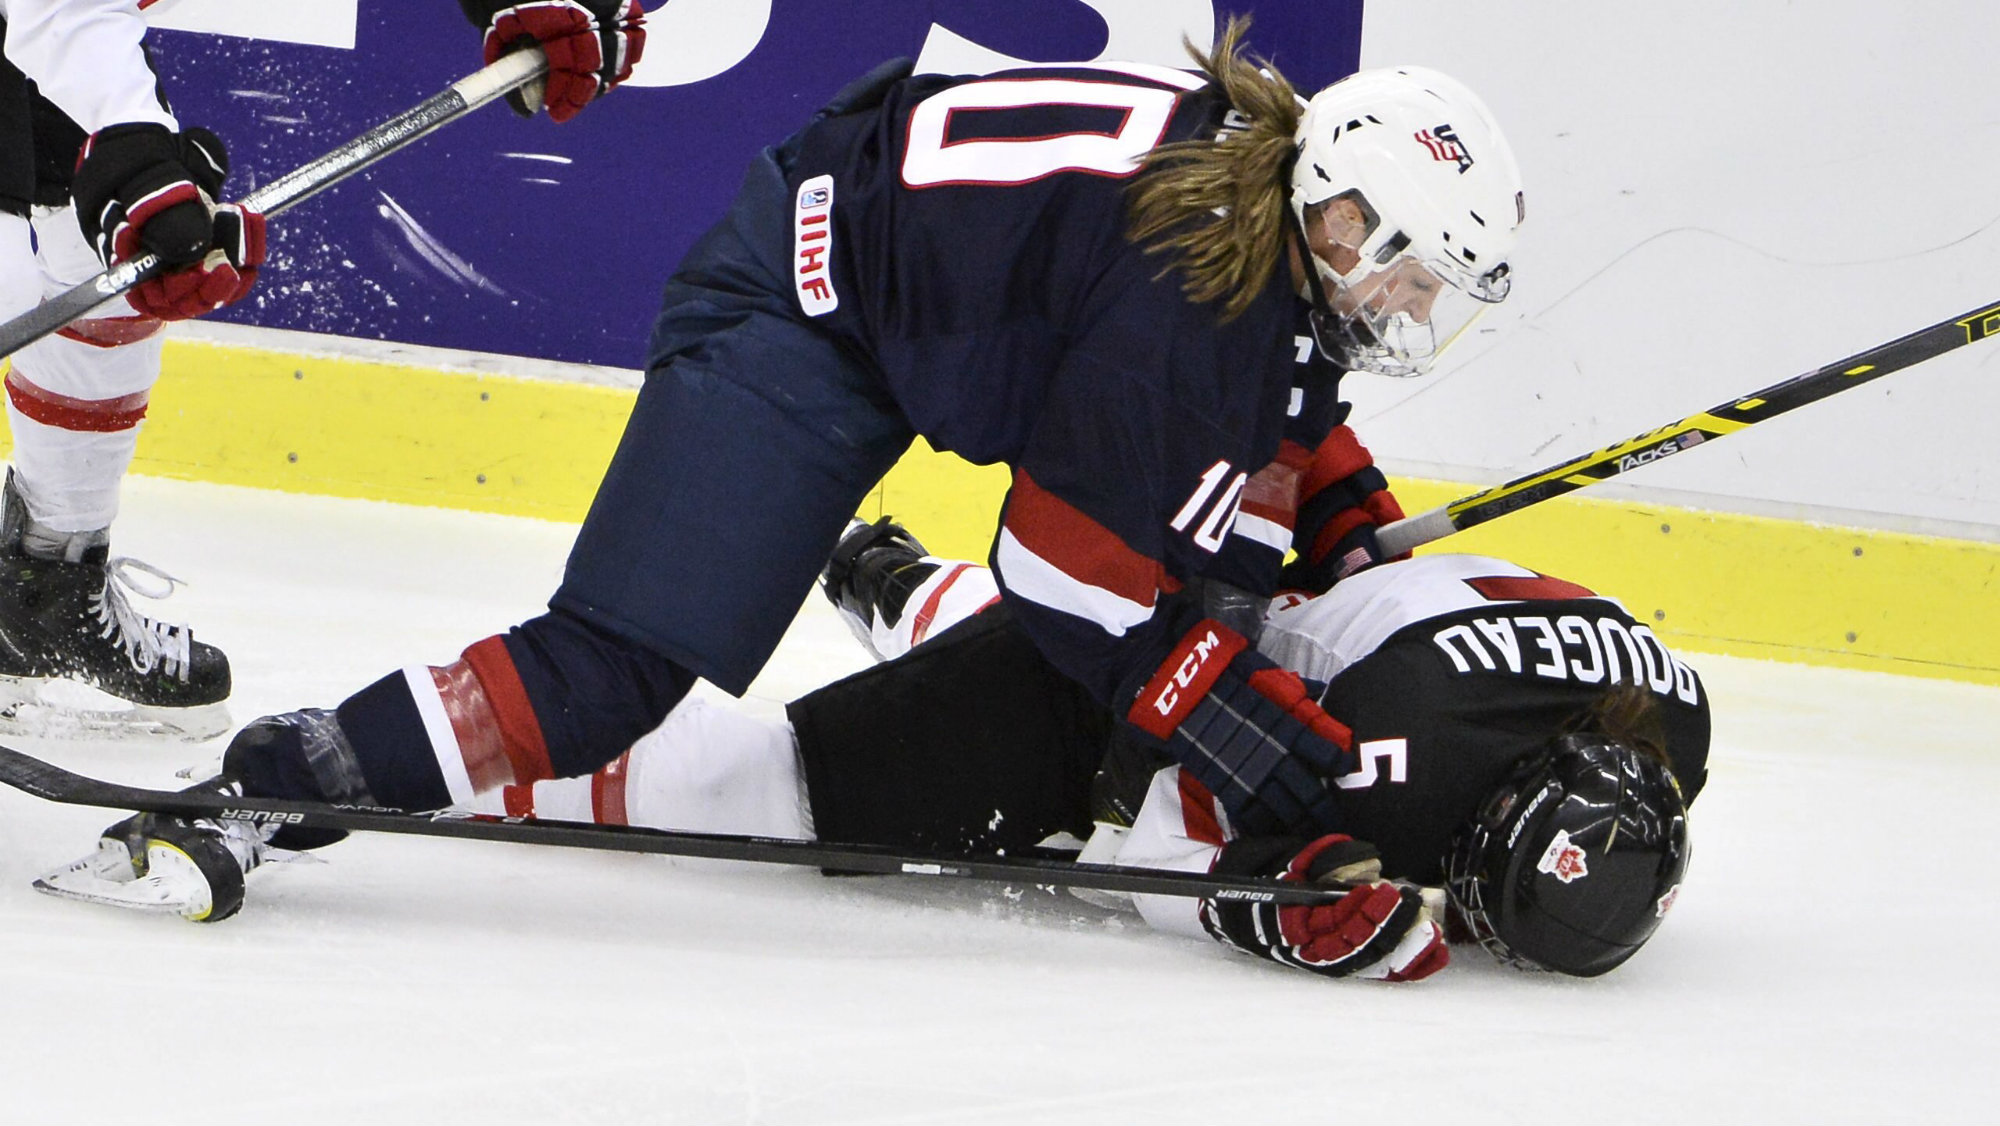 Megan Duggan of the U.S. fights for the puck with Canada's Lauriane Rougeau on the ice during the 2015 IIHF Ice Hockey Women's World Championship gold medal match between USA and Canada at Malmo Isstadion in Malmo, southern Sweden, April 4, 2015. /TT News Agency